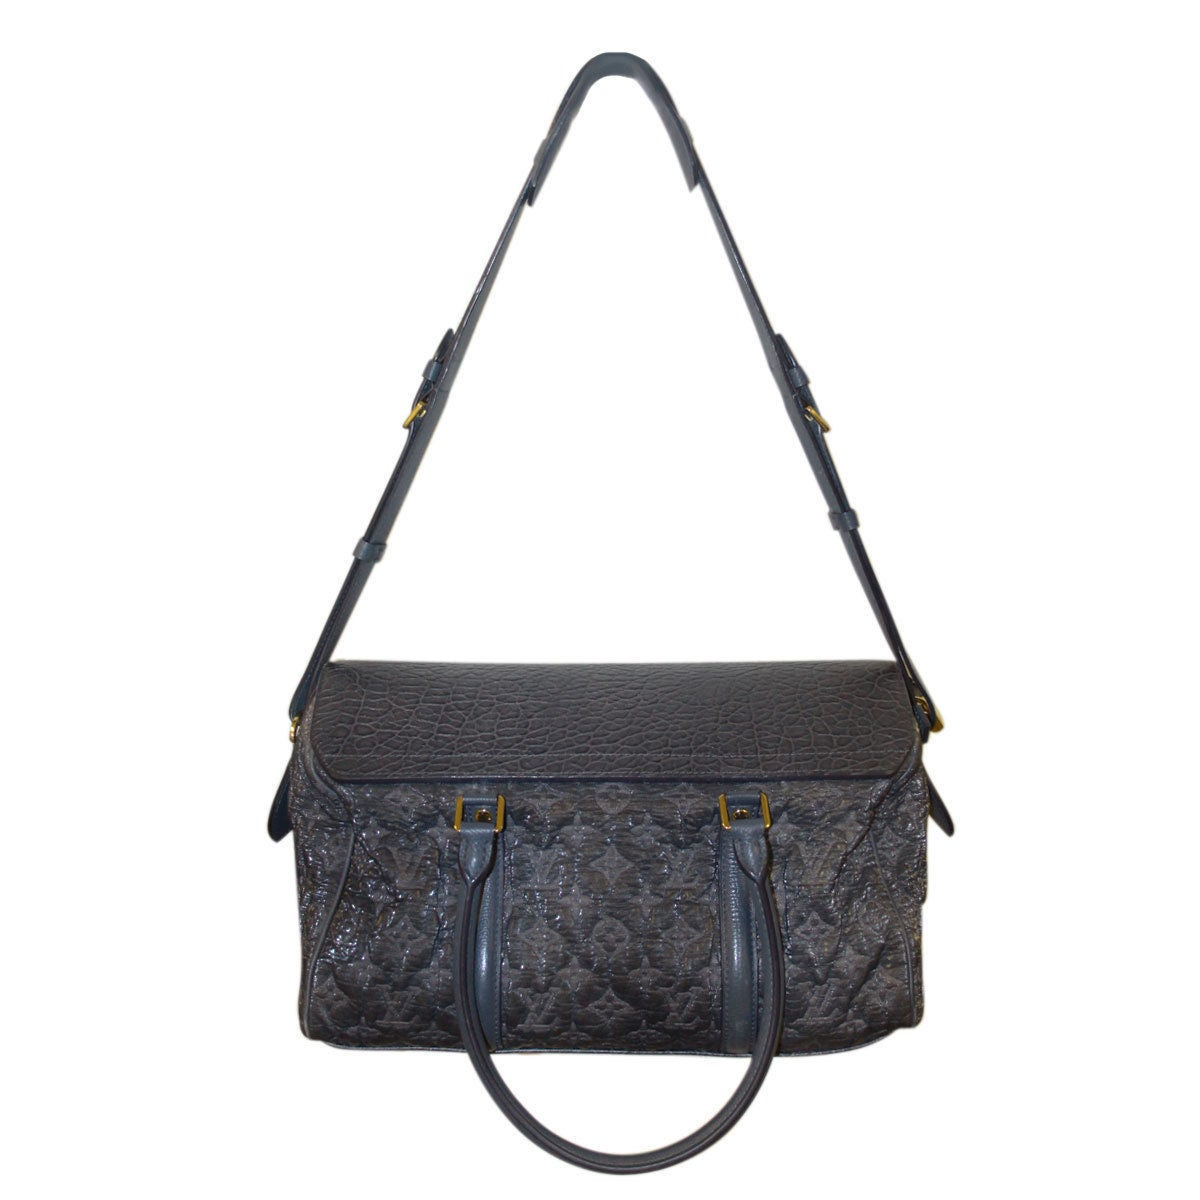 Brand: Louis Vuitton